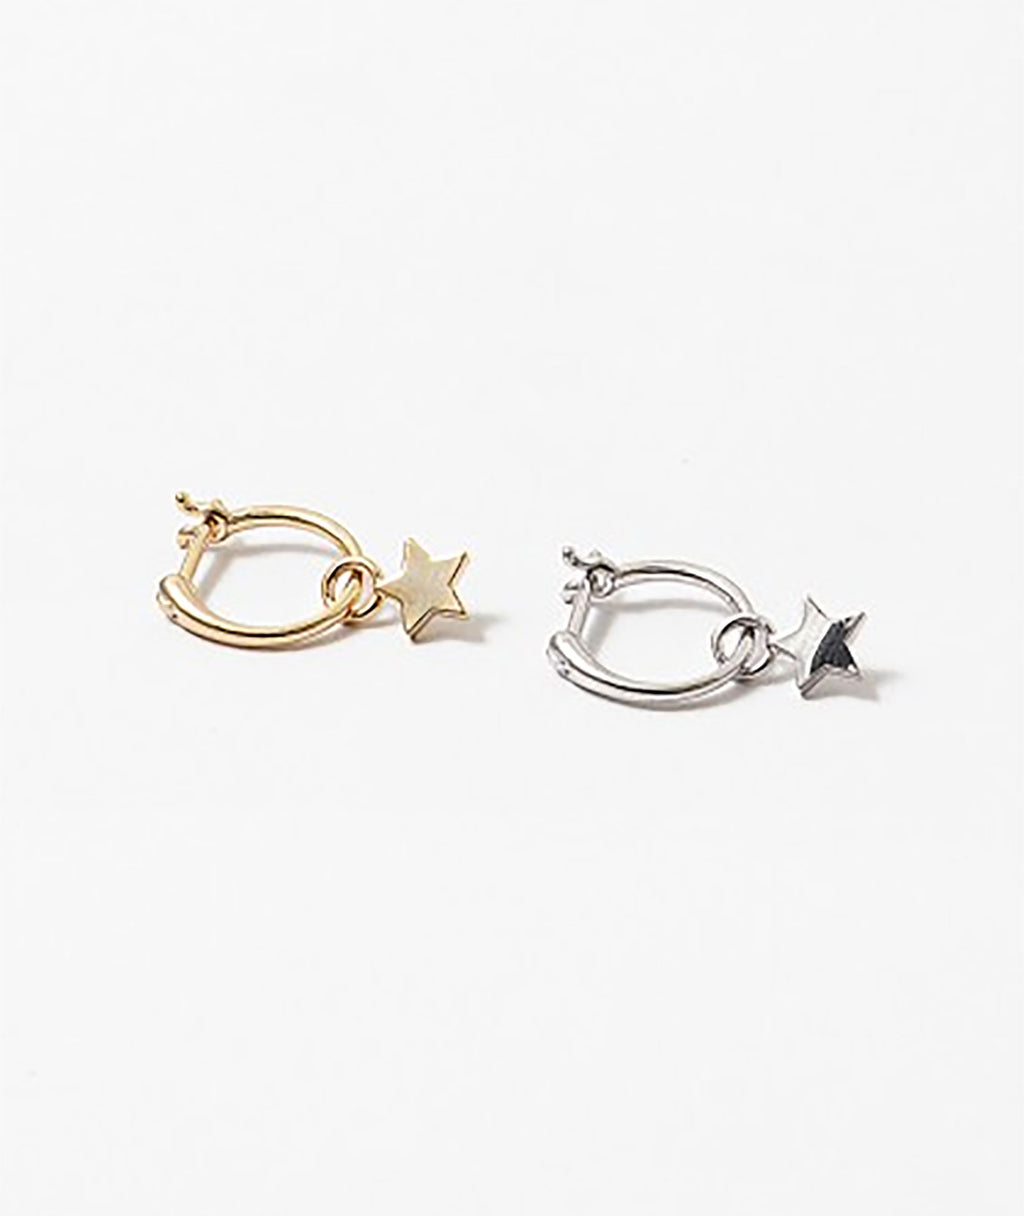 Fashionista J Gold Star Earrings